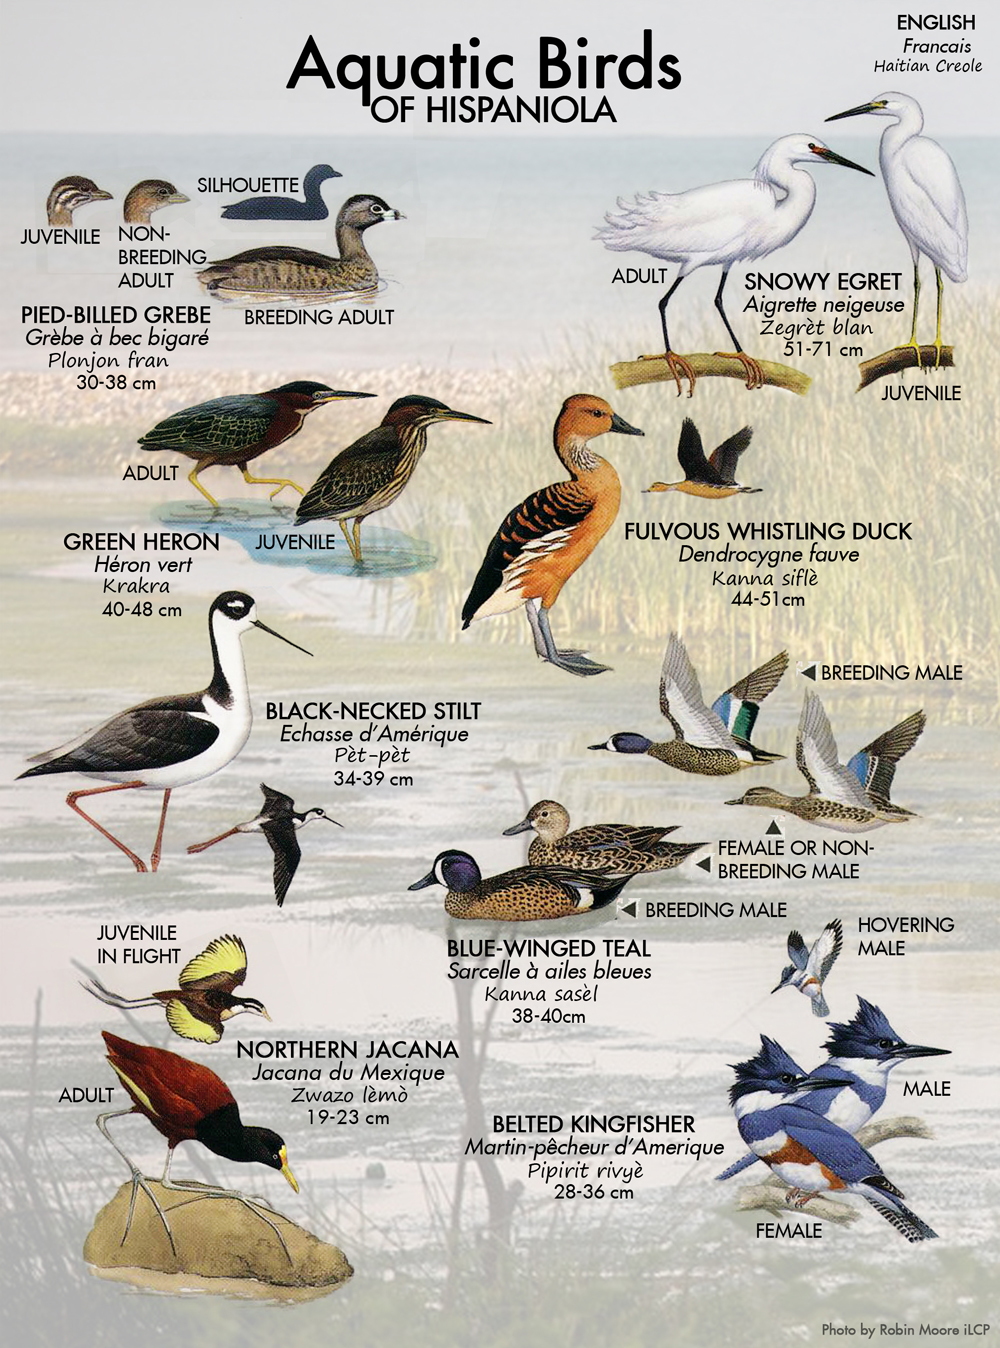 Aquatic Birds